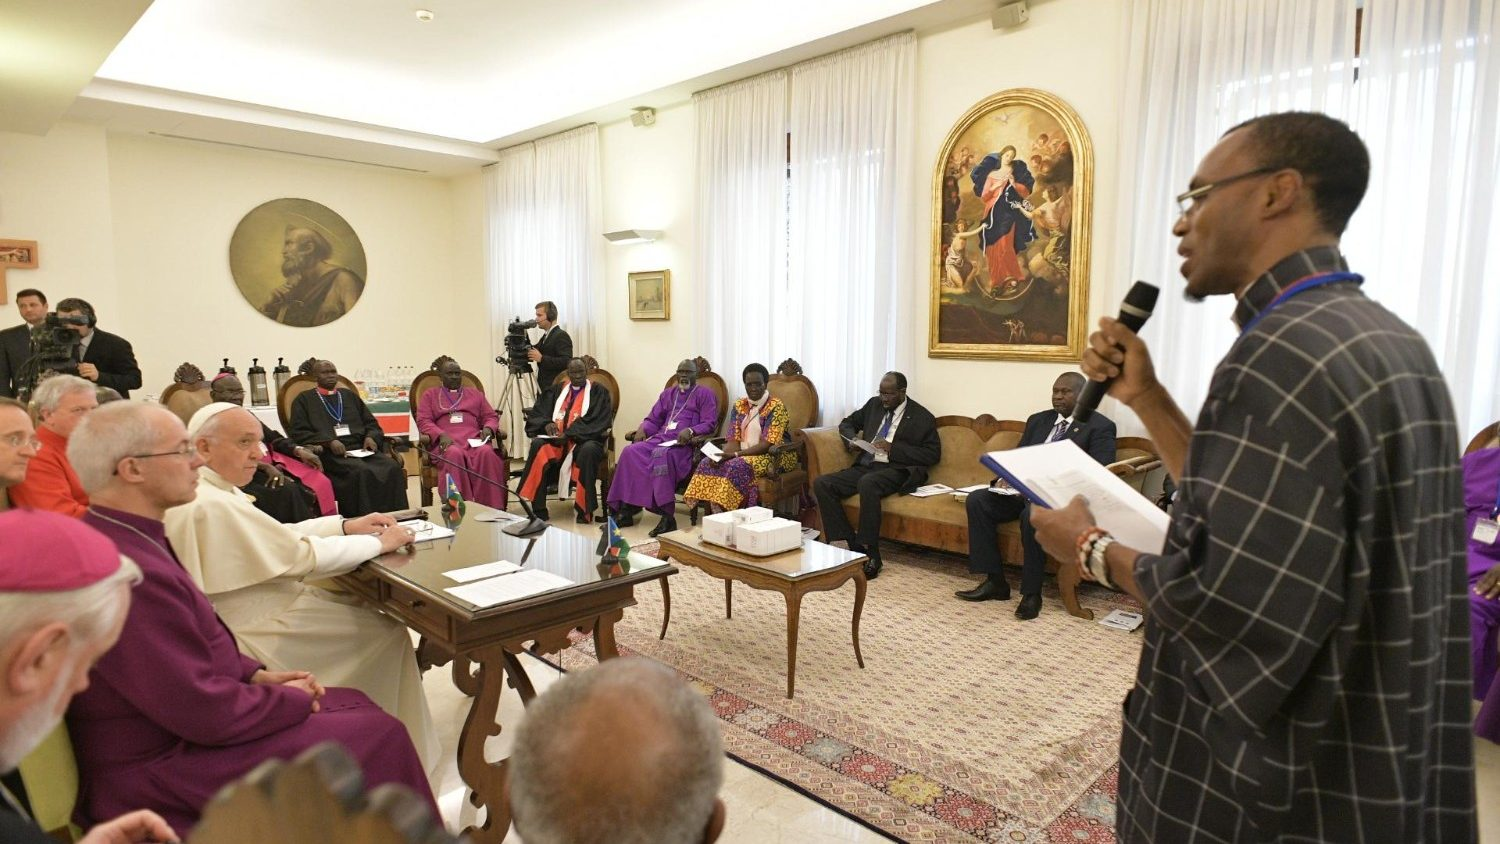 On April 10 and 11, Pope Francis and Archbishop Justin Welby led a retreat for the political and religious leaders of South Sudan. Photo: Servizio Fotografico - Vatican Media